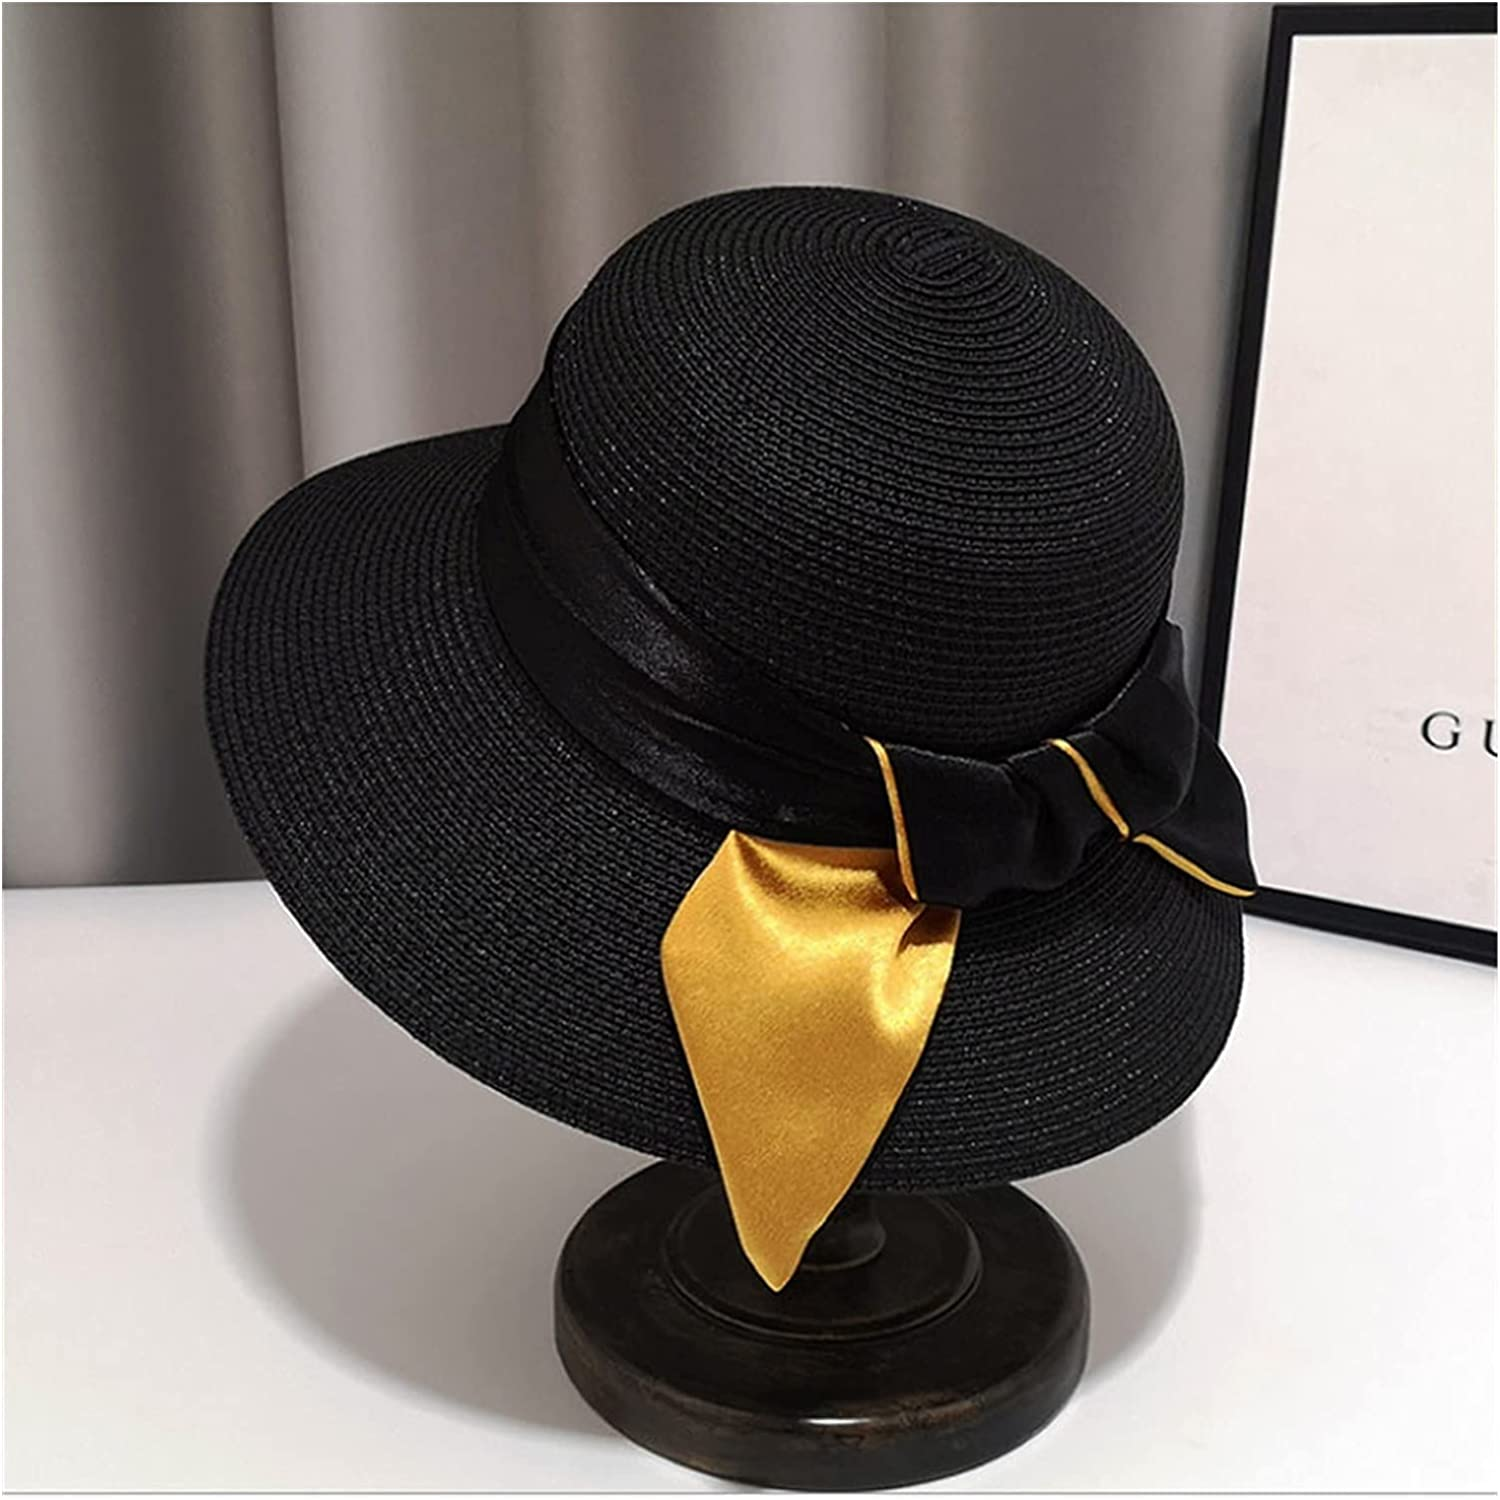 CHENGCHAO Sun hat Board Hats for Summer Wide Max 78% OFF Women Max 52% OFF Straw